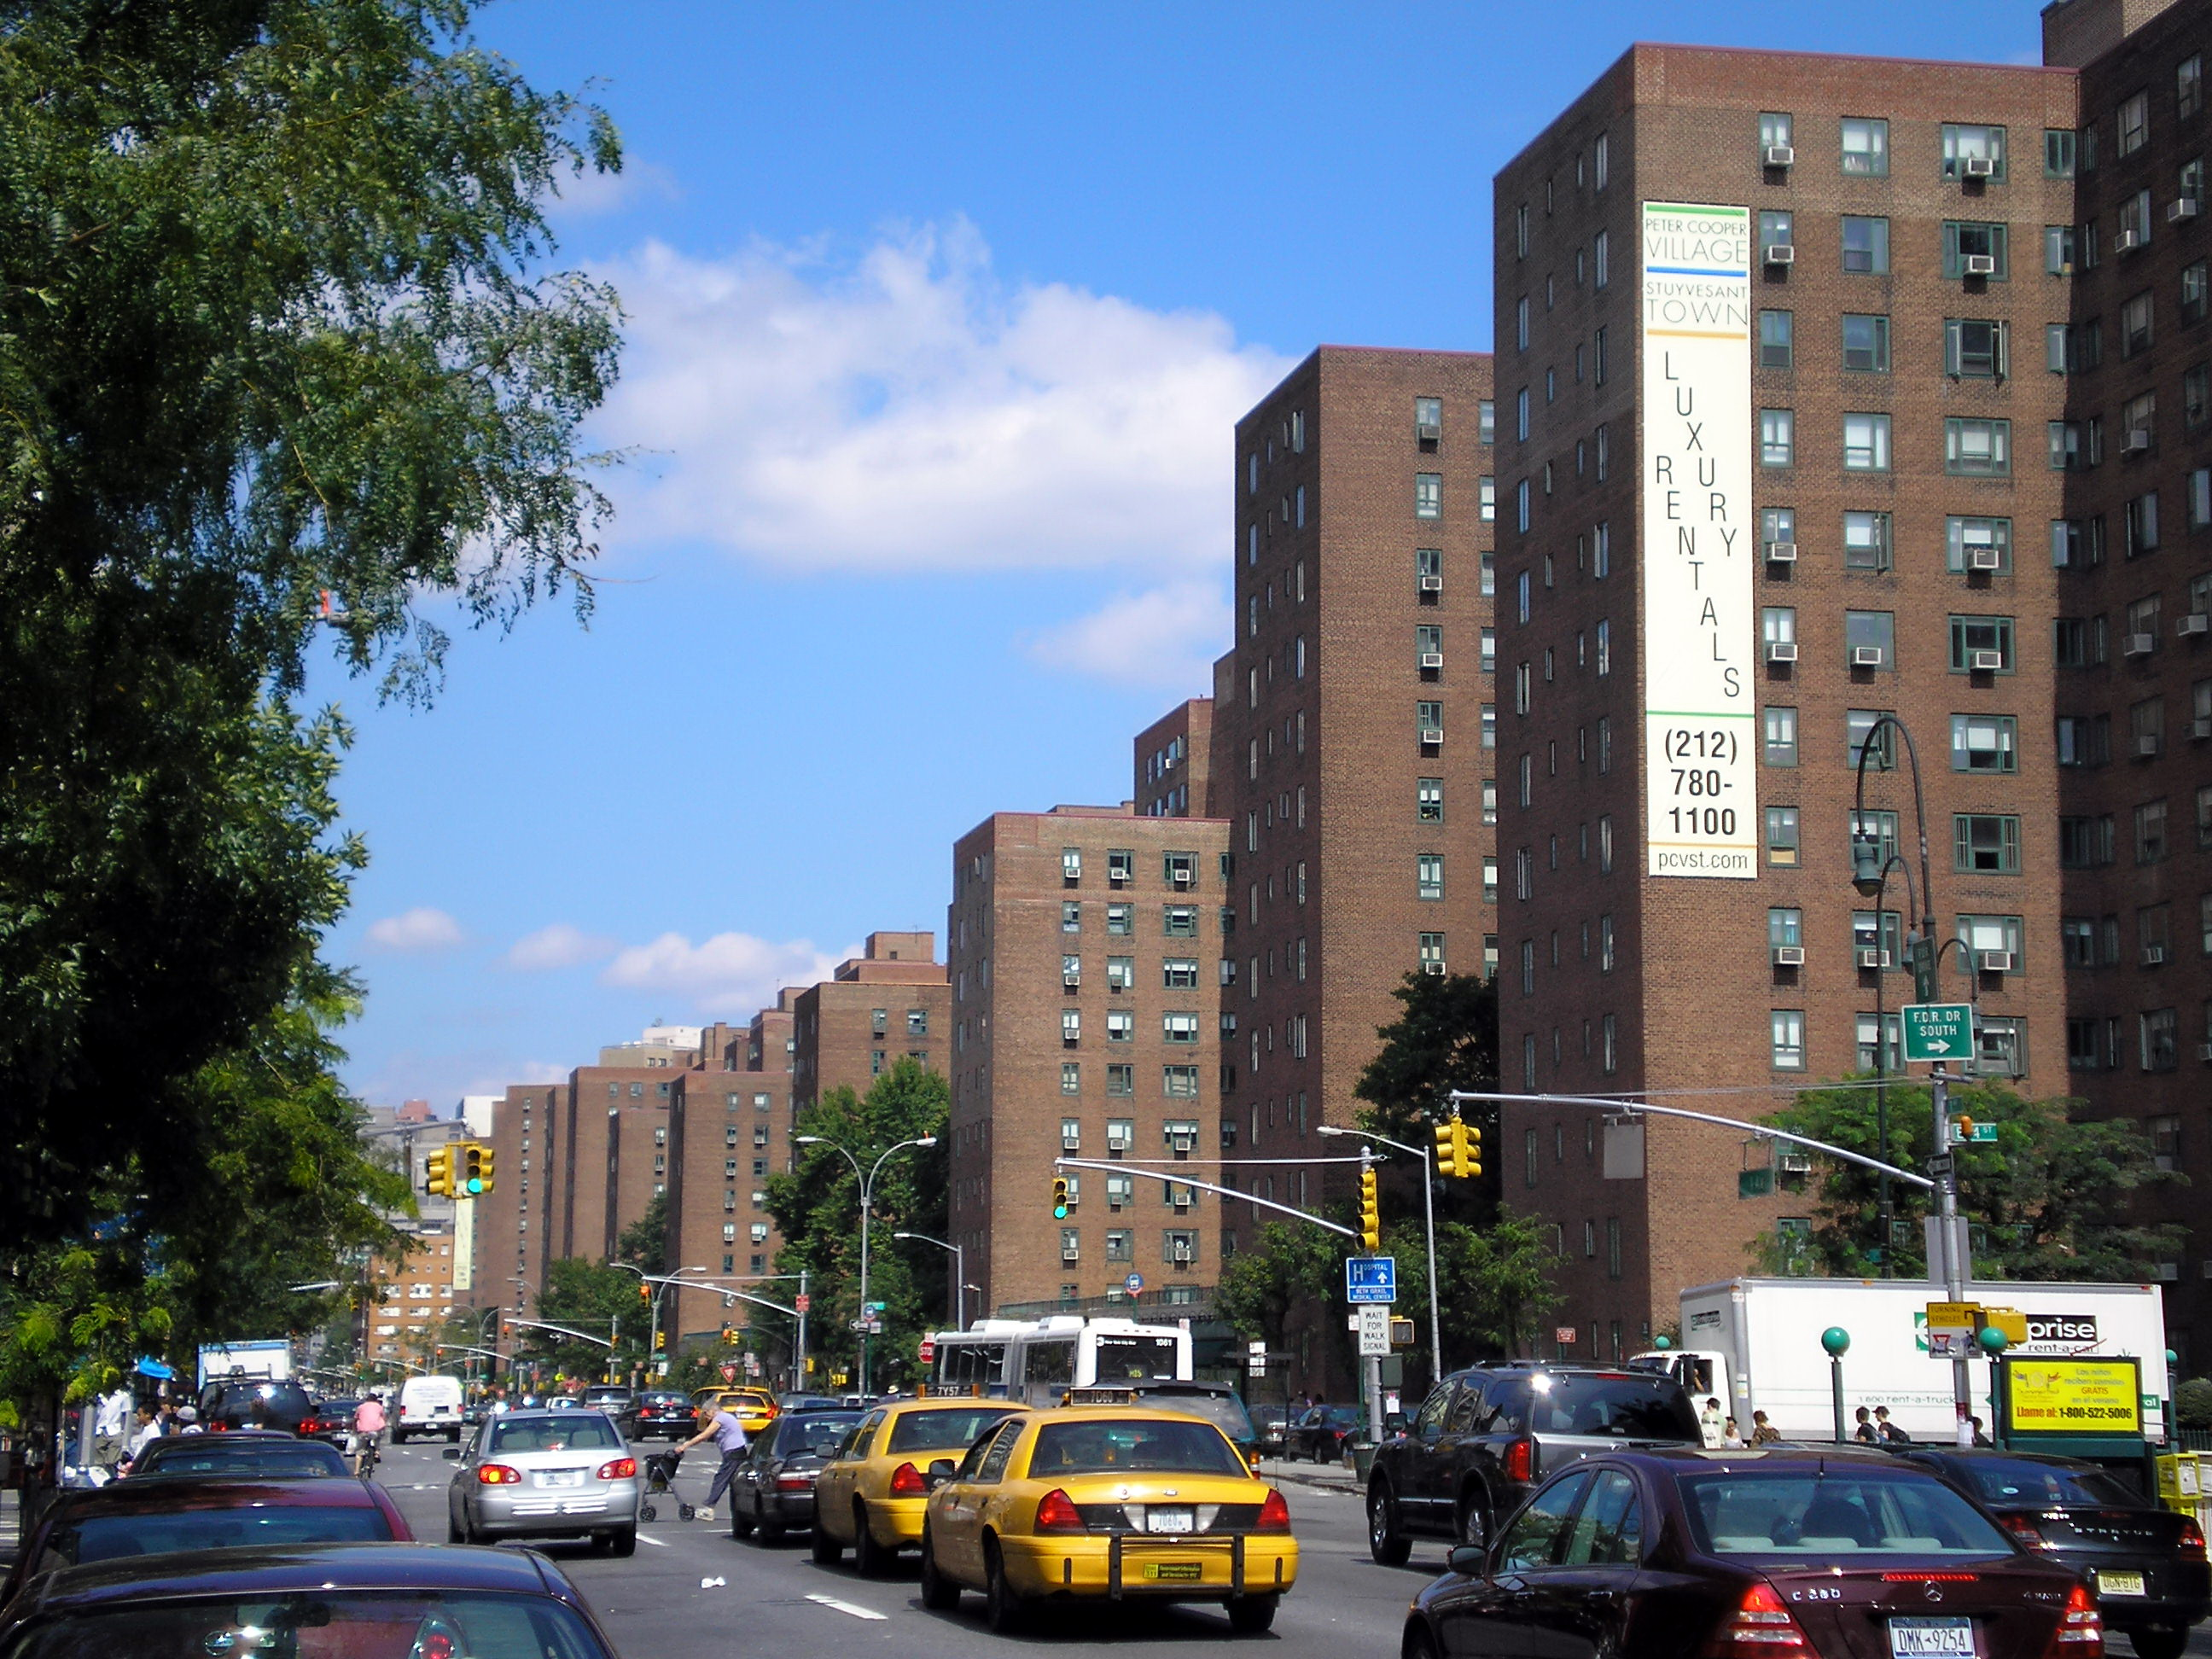 Stuyvesant Town as seen fromstuyvesant town